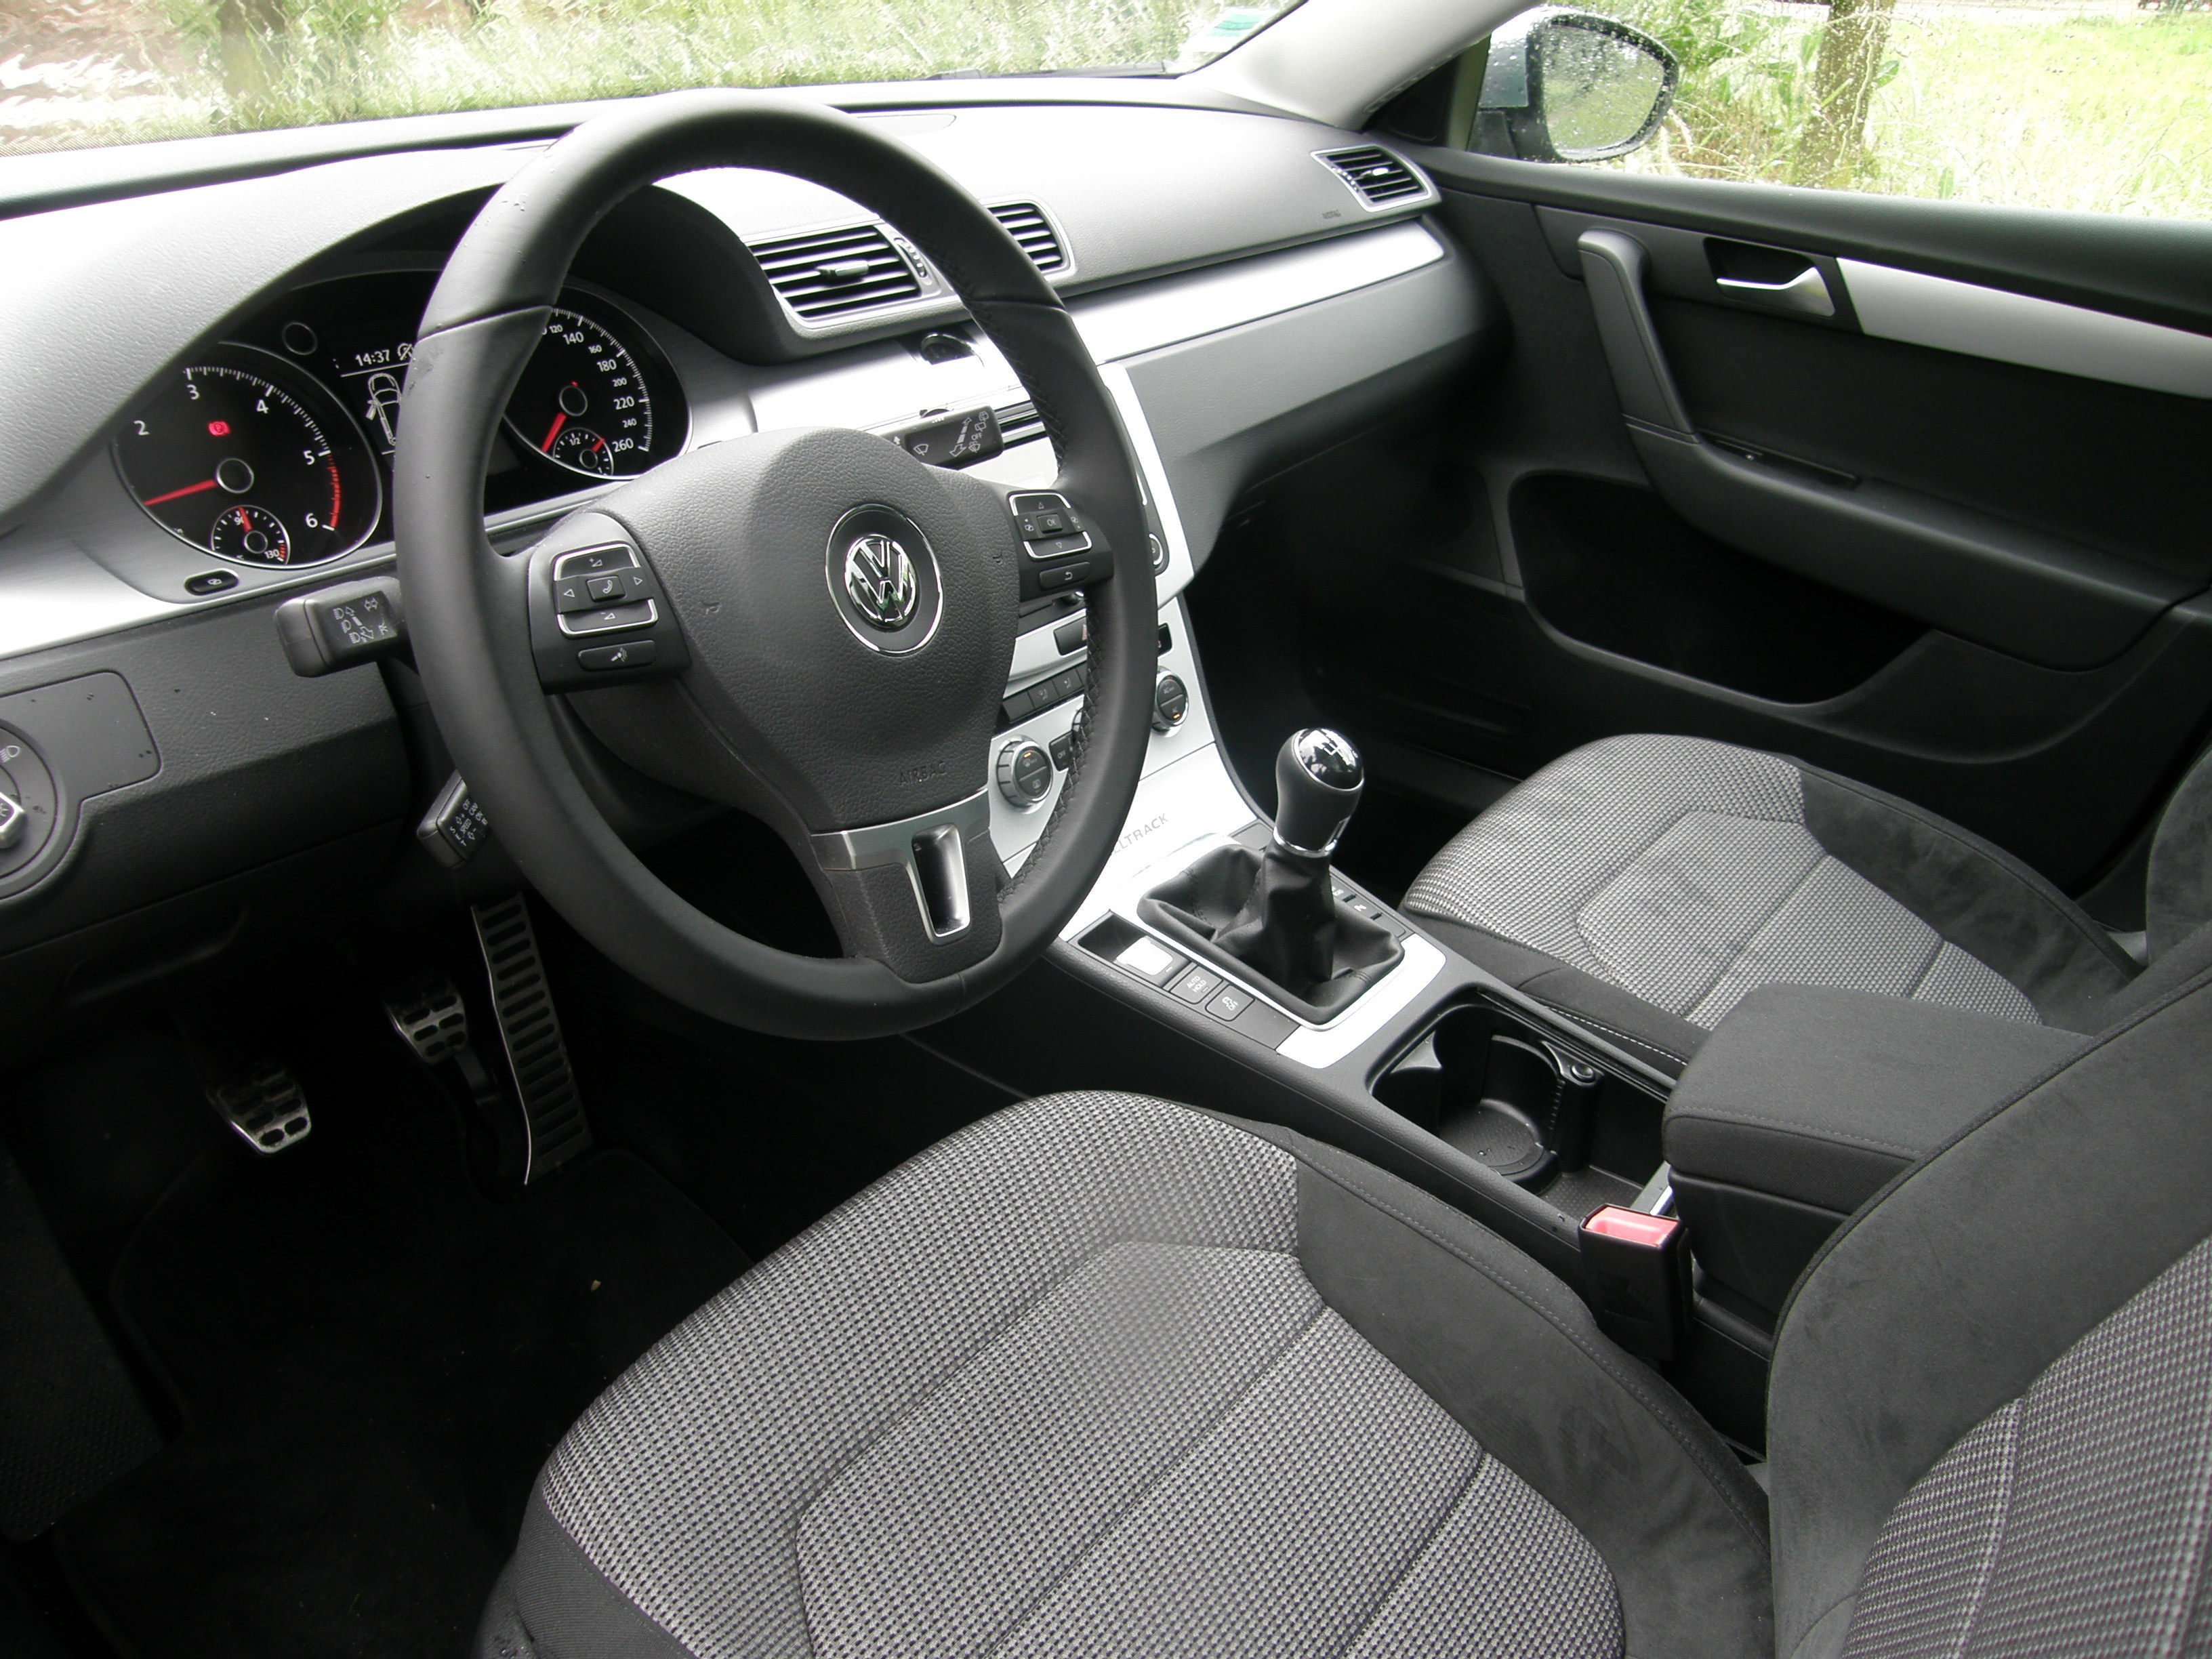 essai volkswagen passat alltrack 2 0 tdi 140 4motion. Black Bedroom Furniture Sets. Home Design Ideas